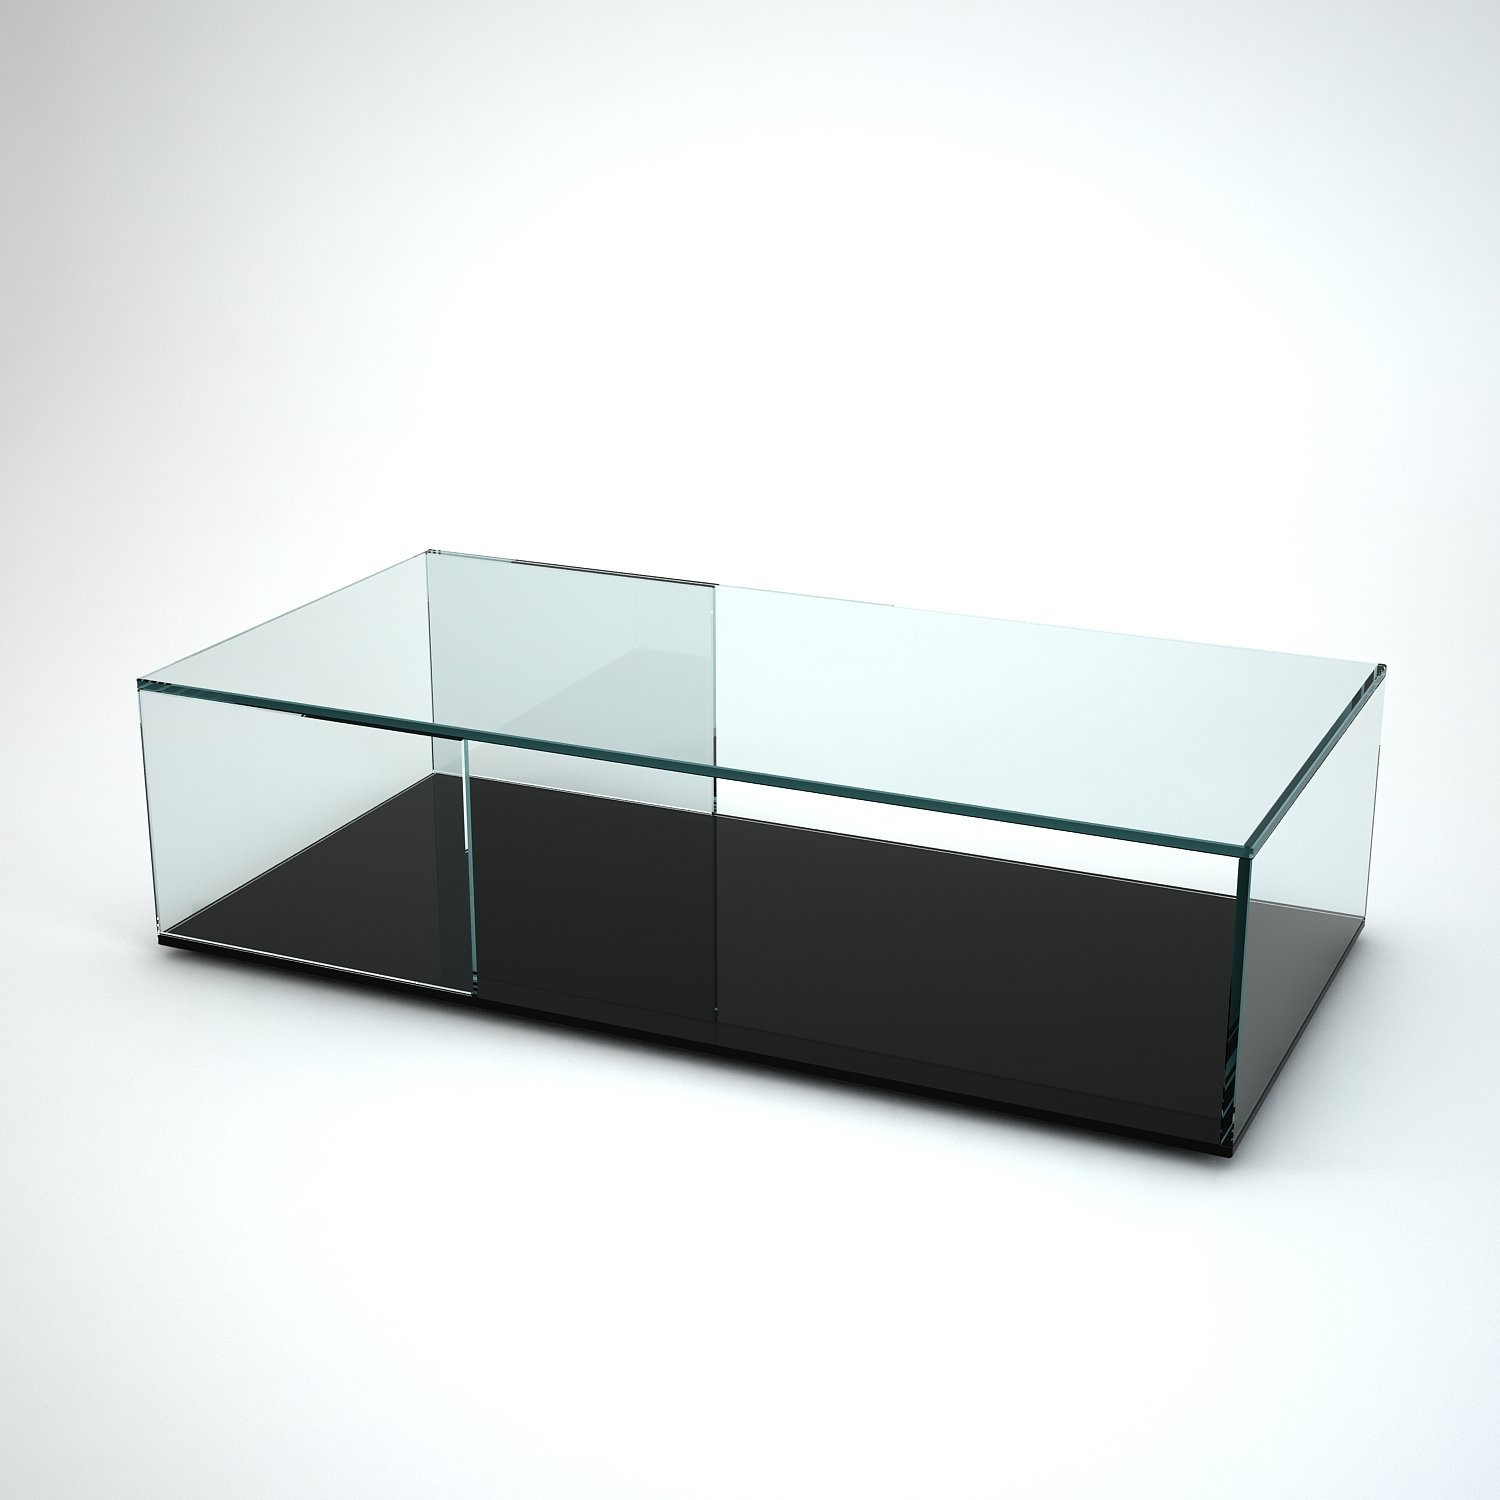 Tifino Rectangular Glass Coffee Table by Klarity Klarity Glass